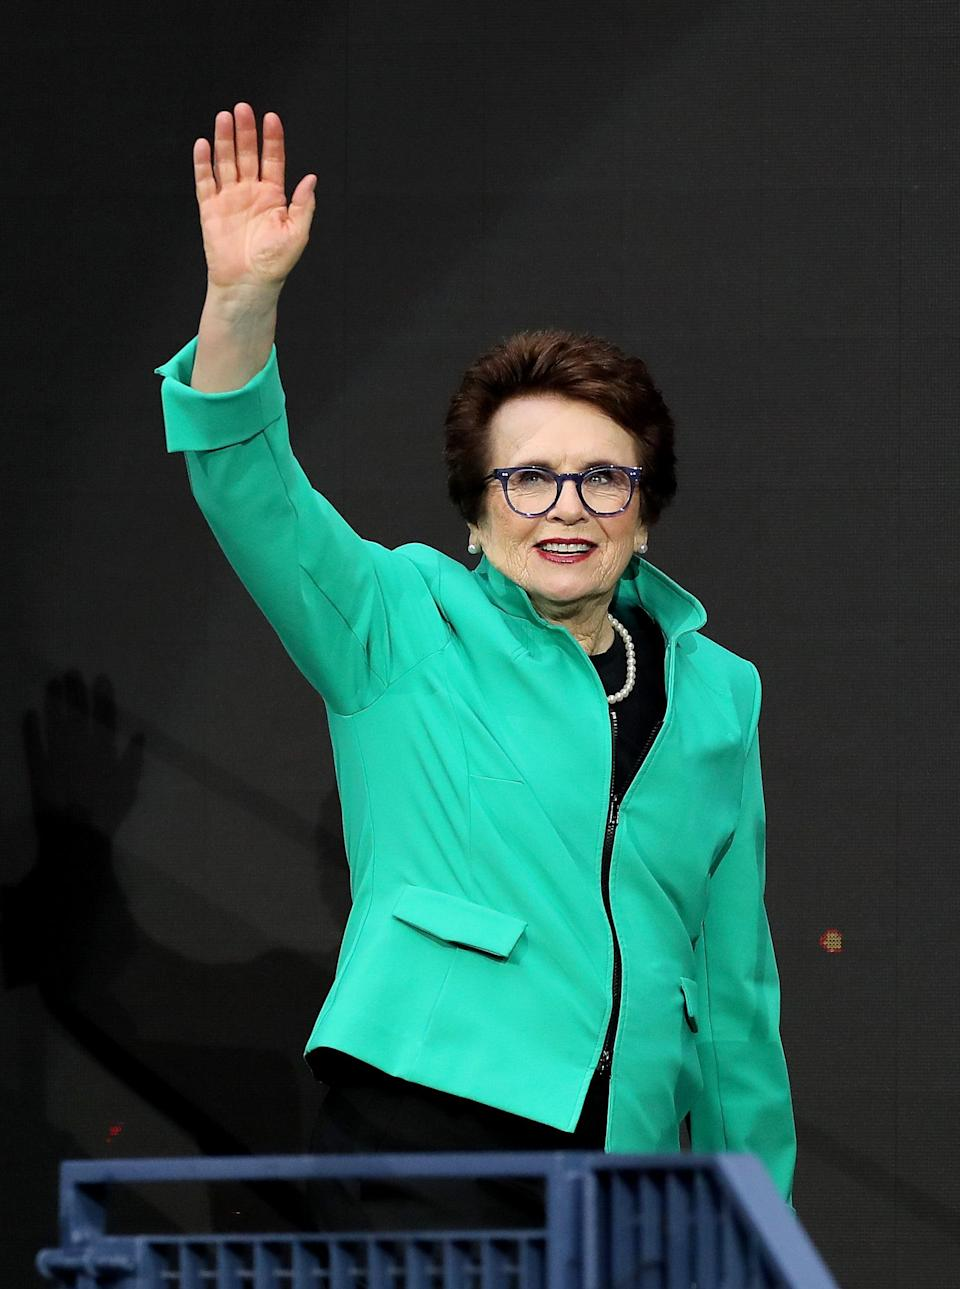 """<p>Billie Jean King is considered one of the greatest tennis players of all time. Now 76, she's equally well-known for her work as an activist for gender equality and LGBTQ+ rights, which harks back to 1981, when she was publicly outed as a lesbian.</p> <p>The experience <a href=""""https://www.nbcnews.com/feature/nbc-out/it-was-horrible-billie-jean-king-recalls-being-publicly-outed-n804451"""" class=""""link rapid-noclick-resp"""" rel=""""nofollow noopener"""" target=""""_blank"""" data-ylk=""""slk:was &quot;horrible"""">was """"horrible</a>,"""" King told NBC News in 2017, adding that her team urged her to deny her sexuality. King refused, saying """"I'm going to do it. I don't care. This is important to me to tell the truth."""" She said she didn't fully feel comfortable about being gay until she was 51, but added that if she could change anything about her experiences, """"I'd come out earlier.""""</p>"""